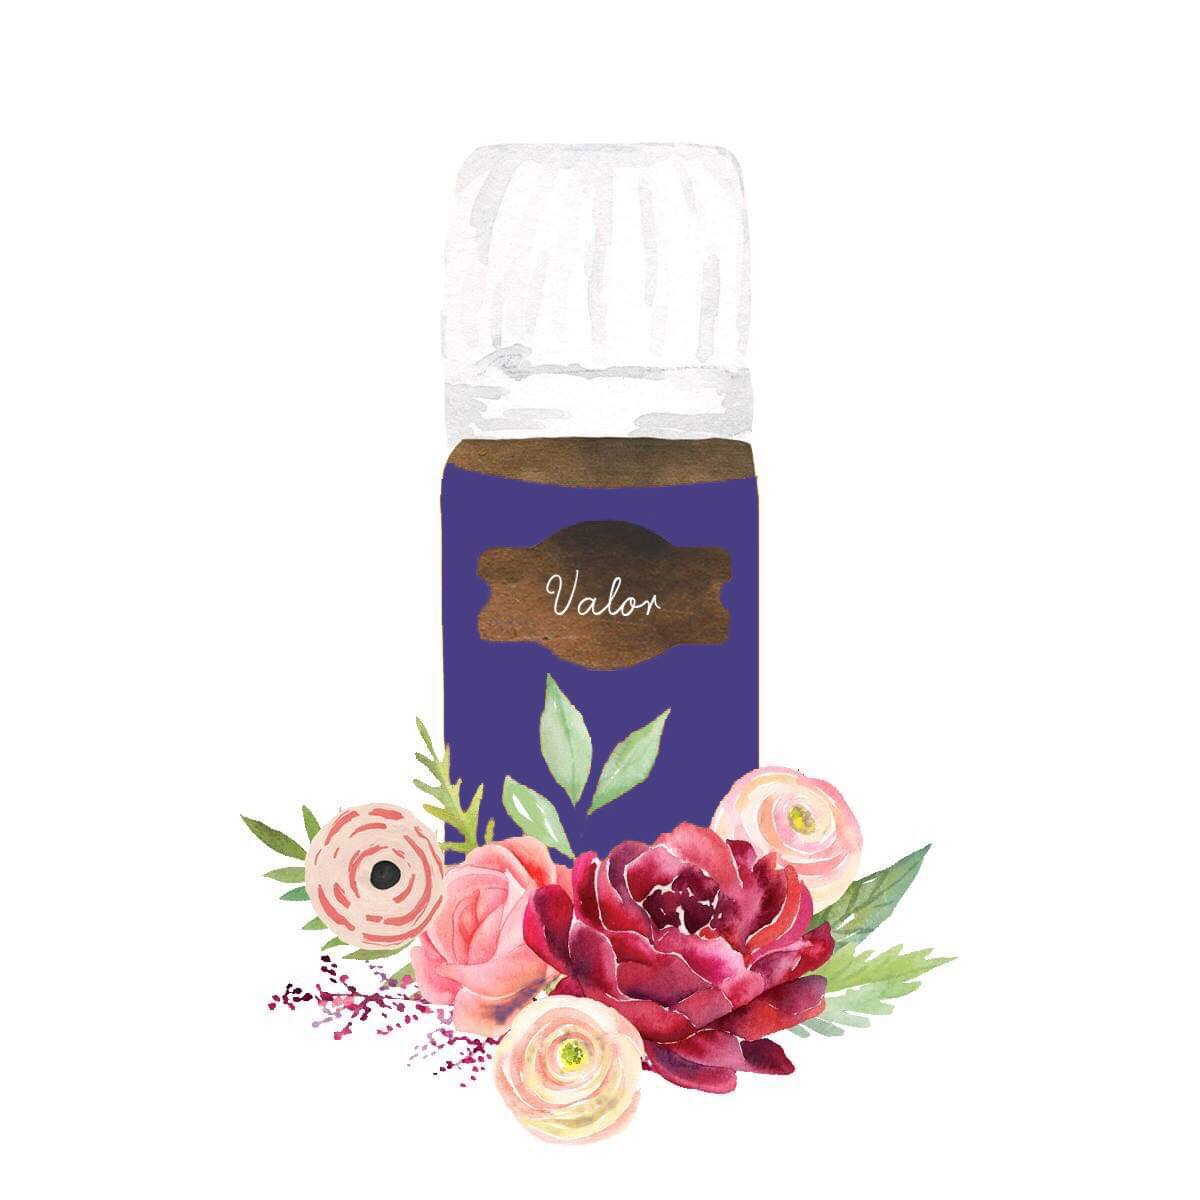 Valor - This is a must-have oil. My absolute fav! It's a temper-tamer, confidence-booster, emotion-calming powerhouse.